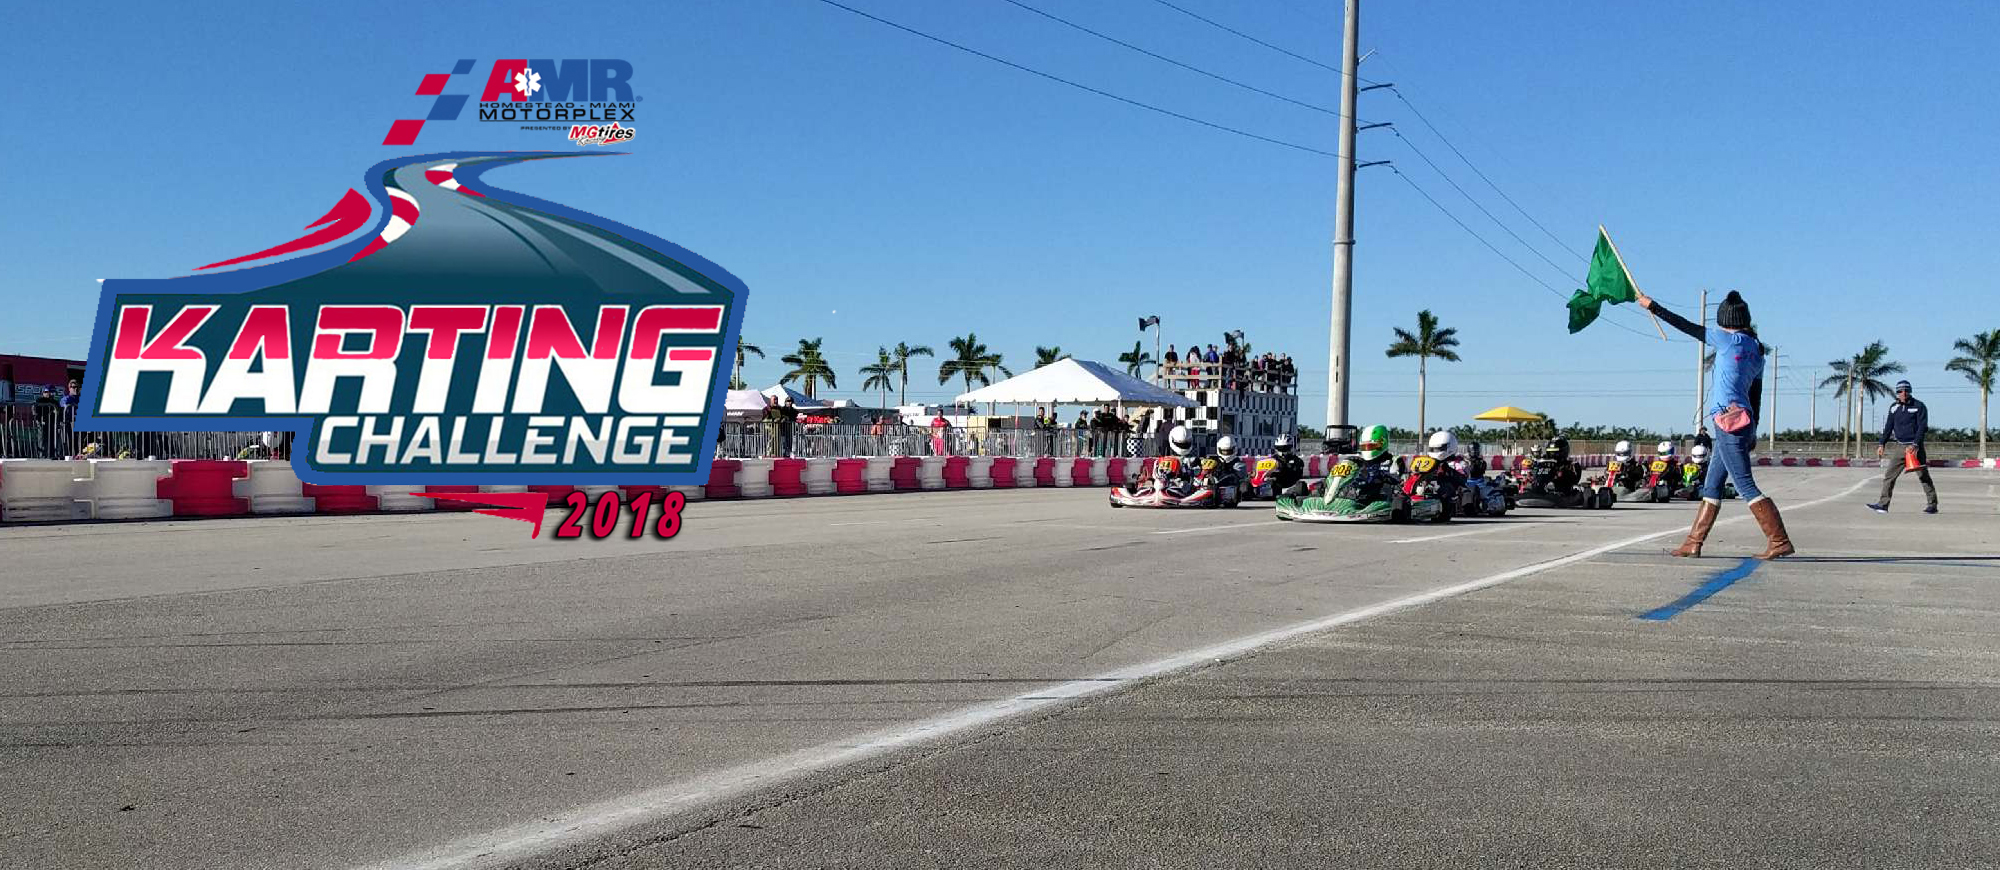 2018 Karting Challenge by MG Schedule Released